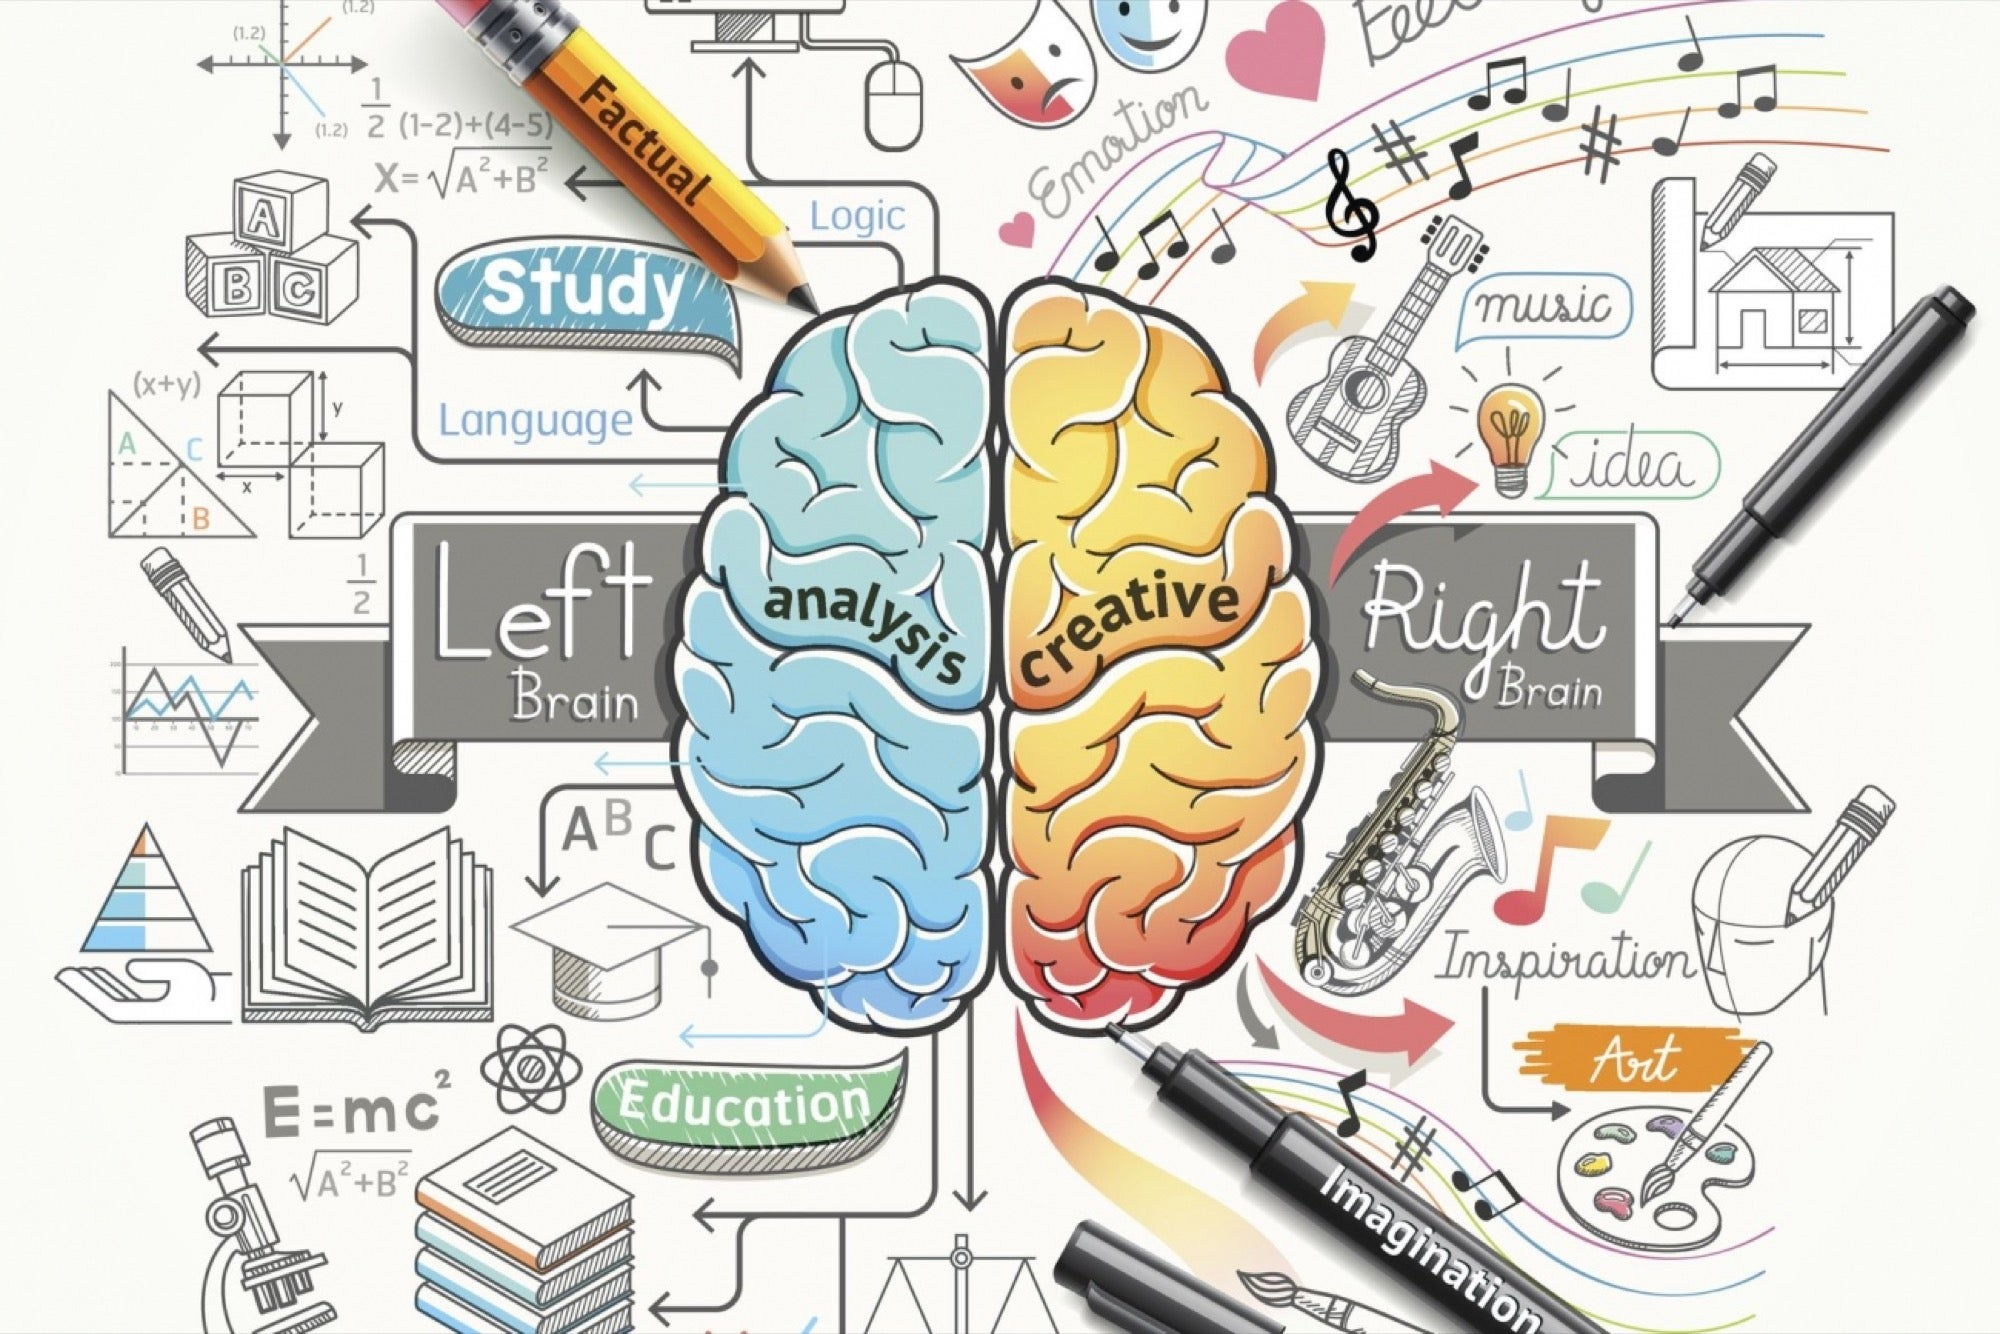 Activities associated with left and right brain